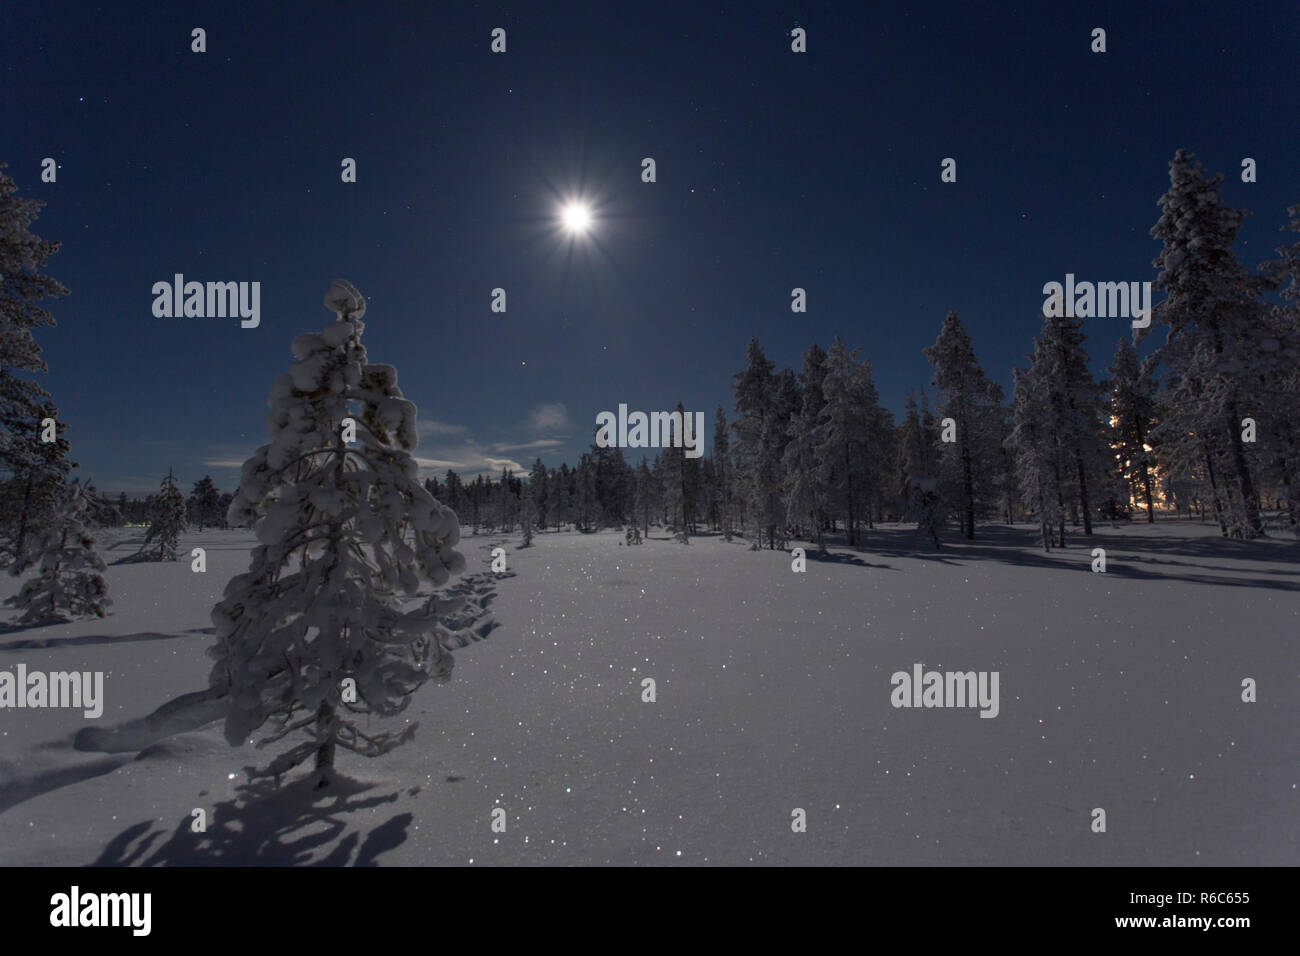 Full moon and frozen landscape - Stock Image